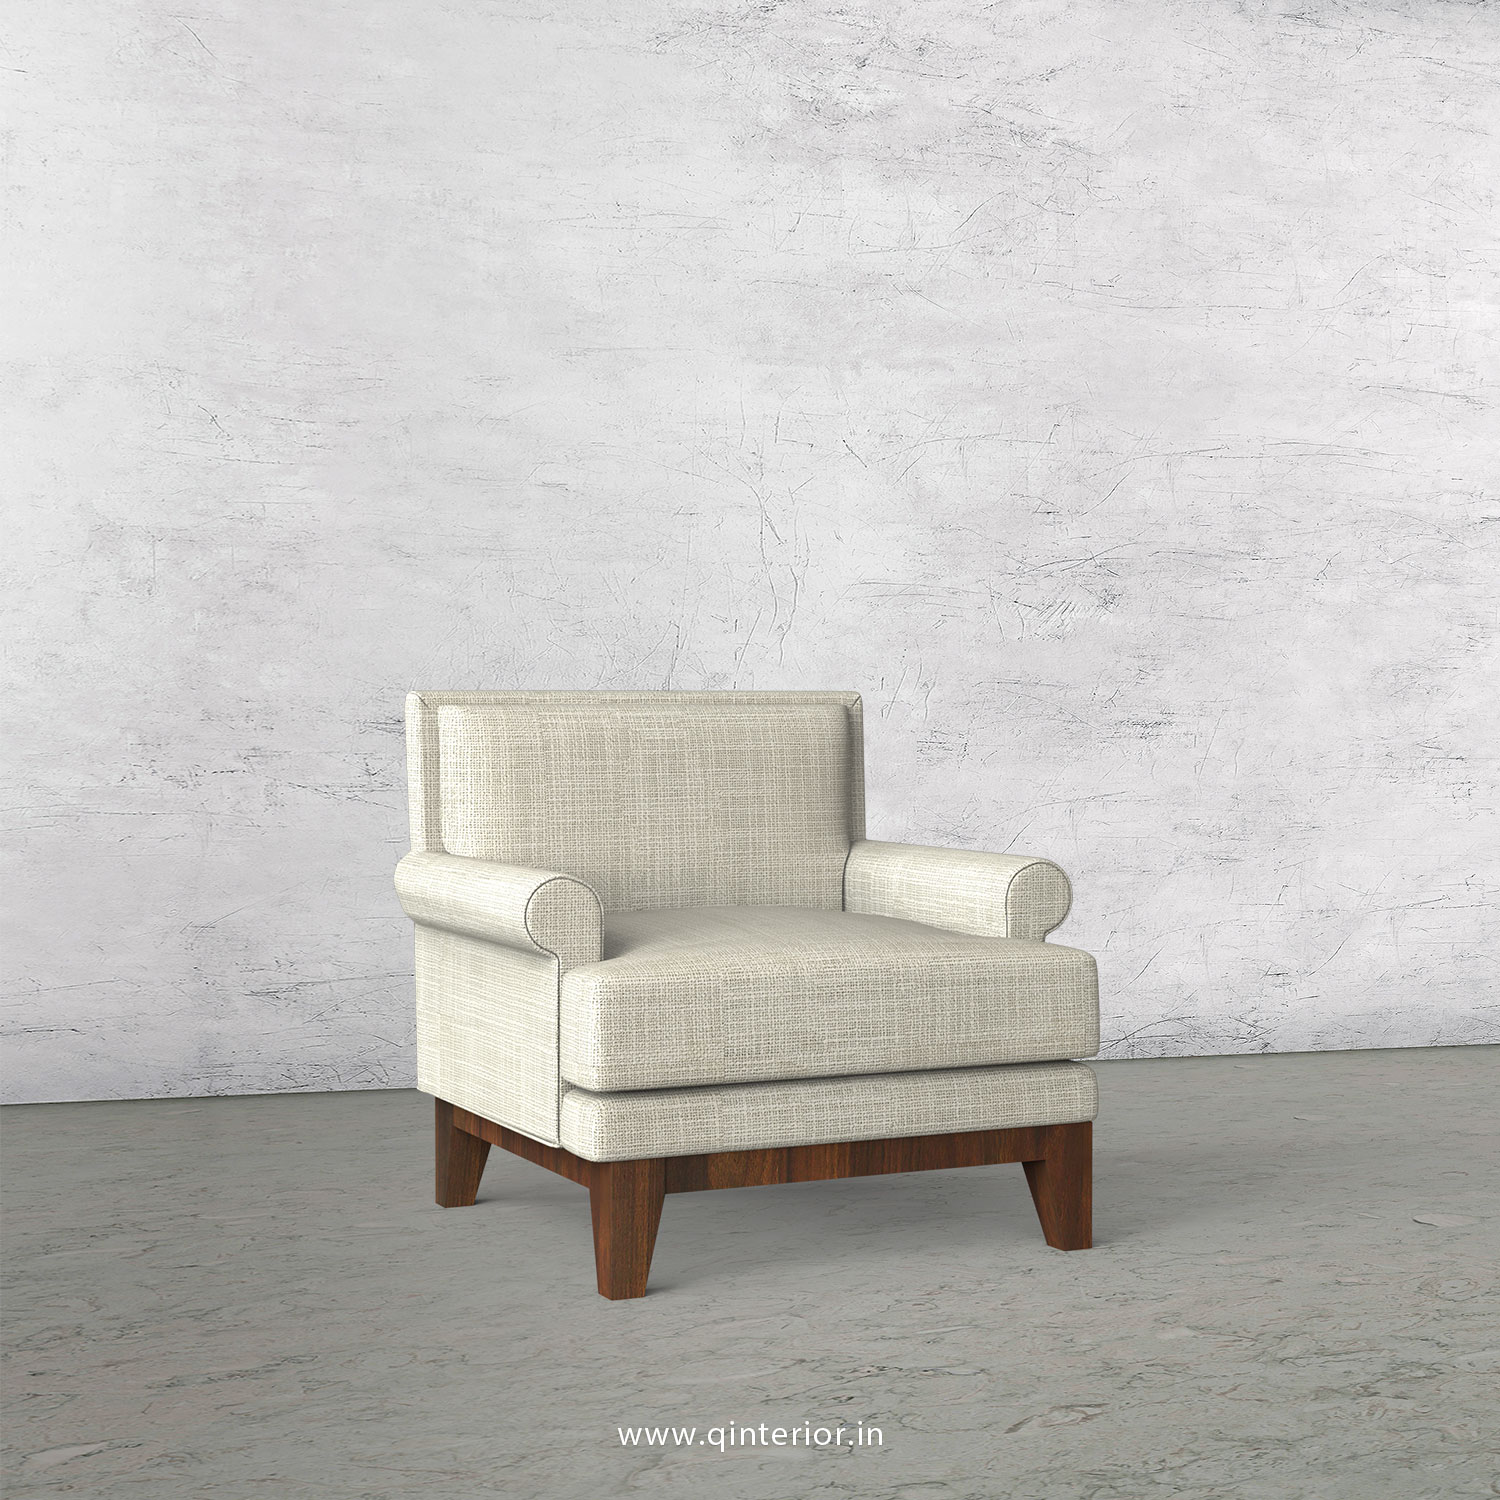 Aviana 1 Seater Sofa in Marvello - SFA001 MV05